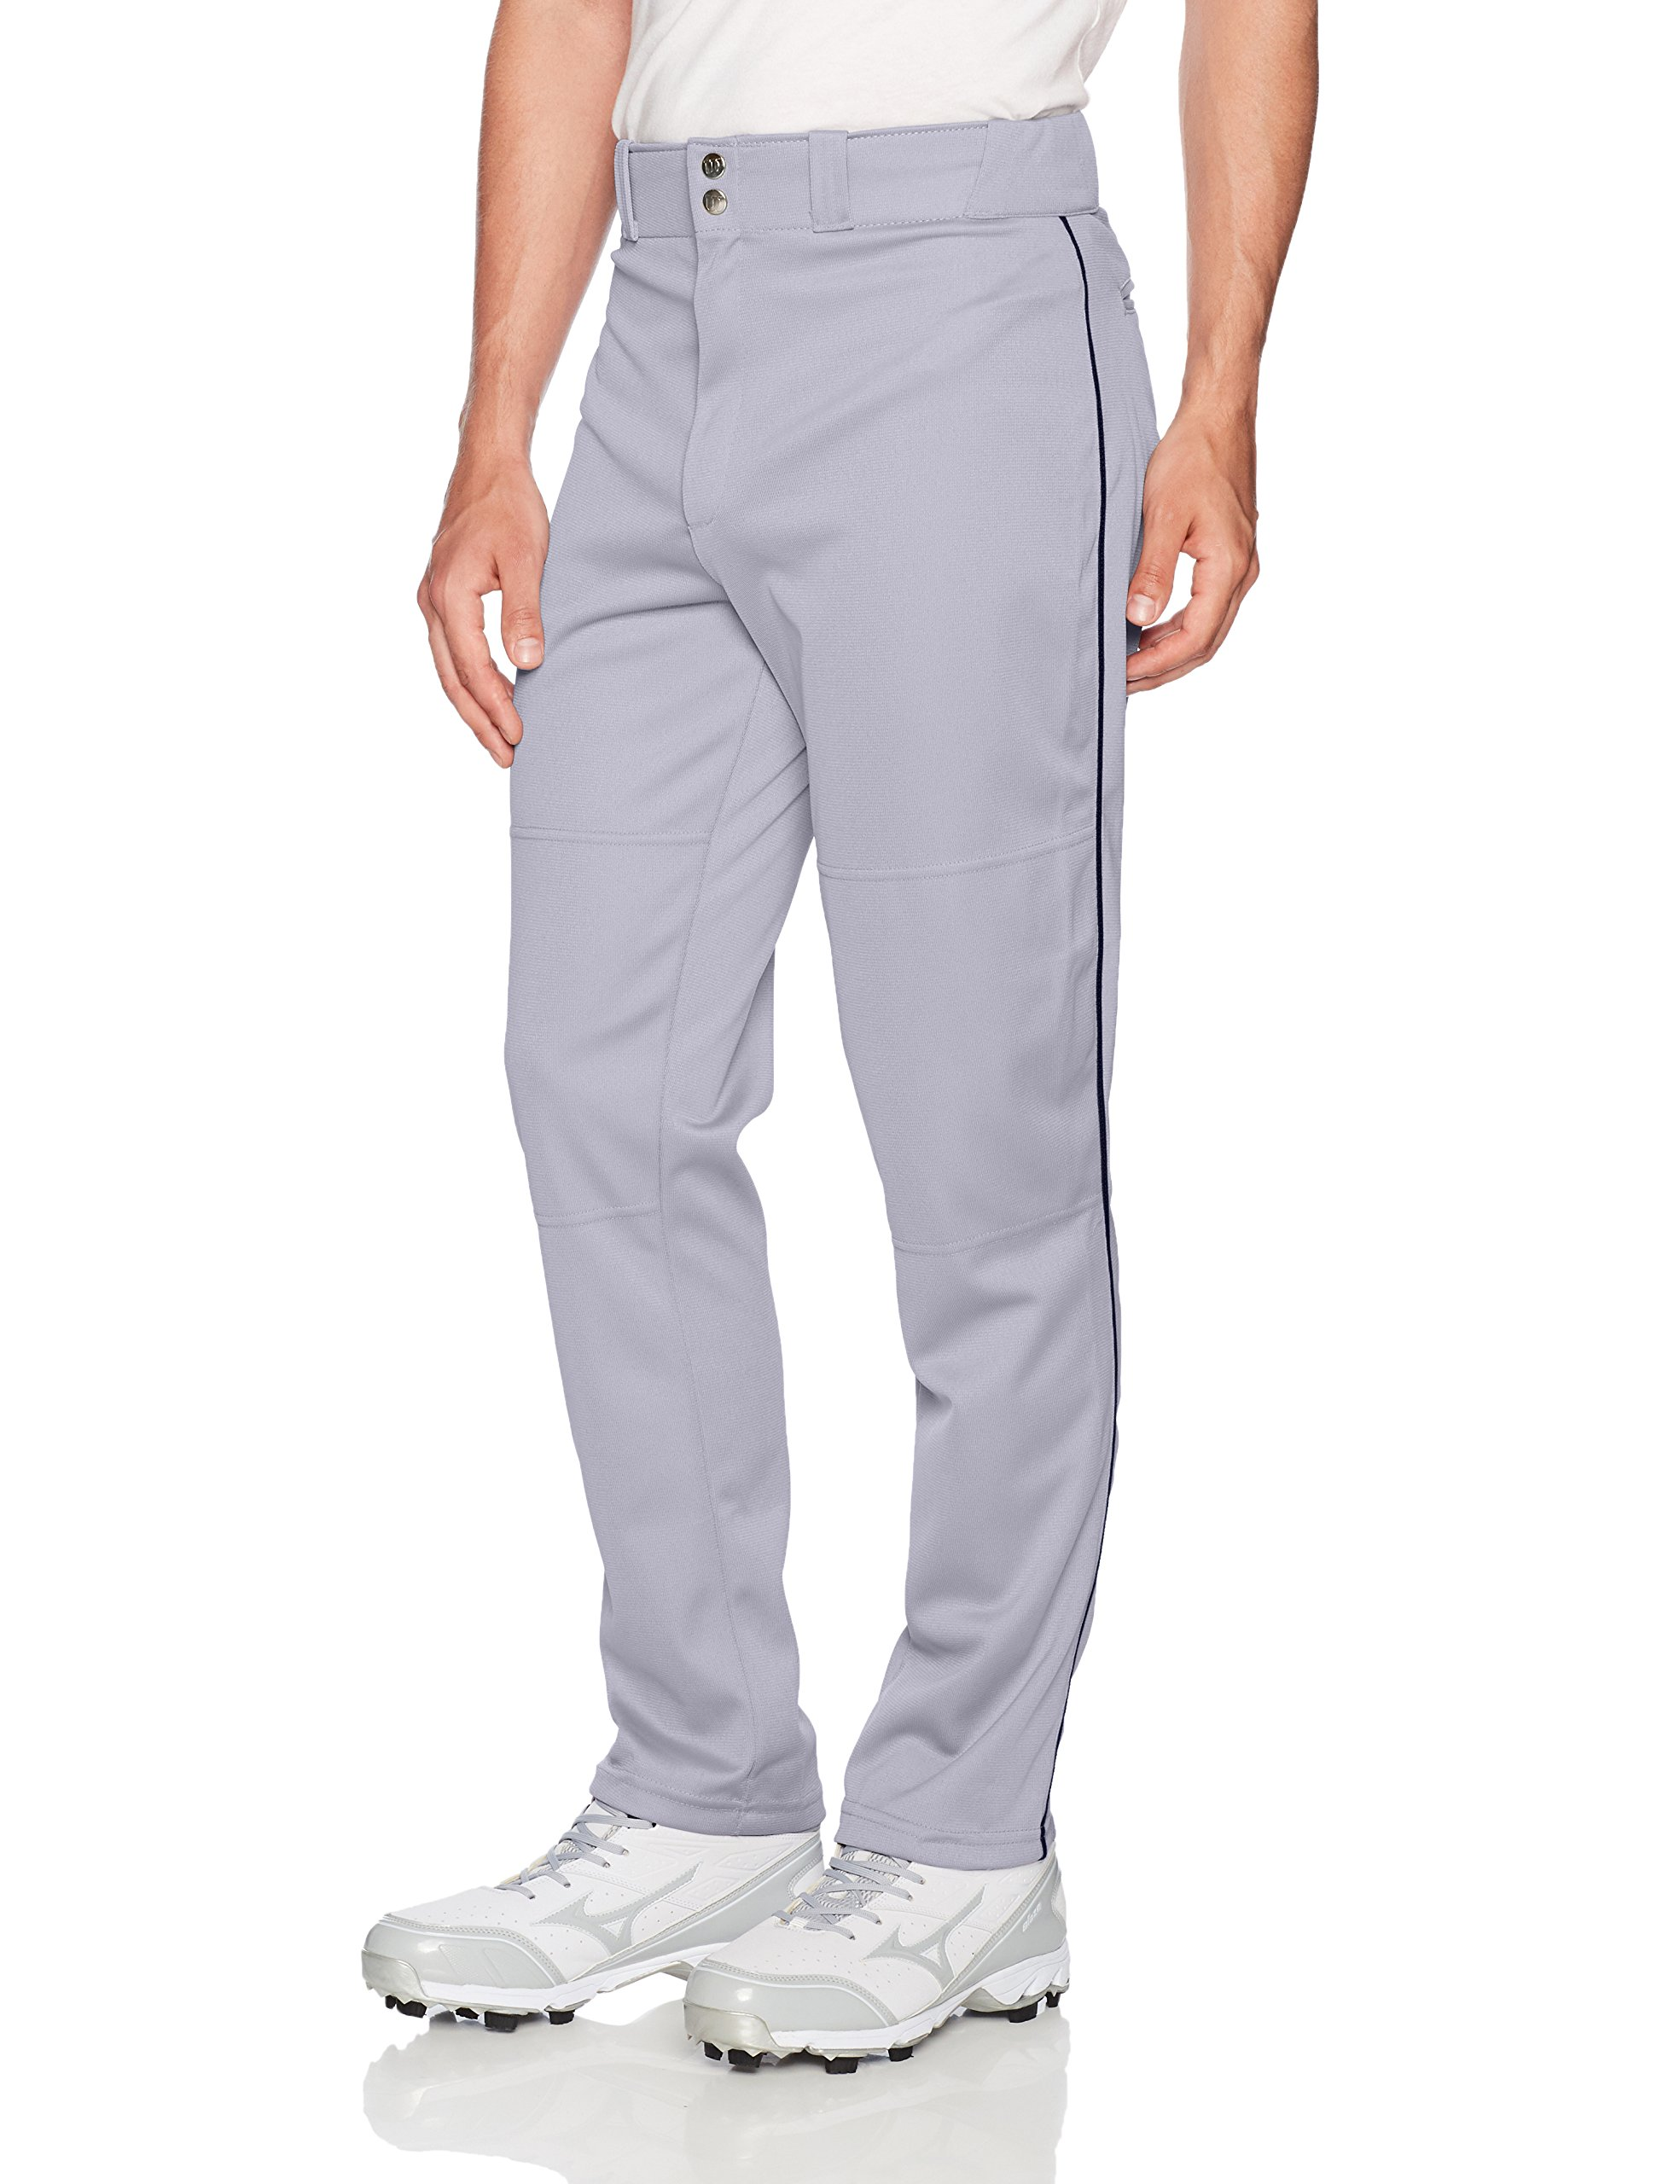 Wilson Men's Classic Relaxed Fit Piped Baseball Pant, Grey/Navy, Medium by Wilson